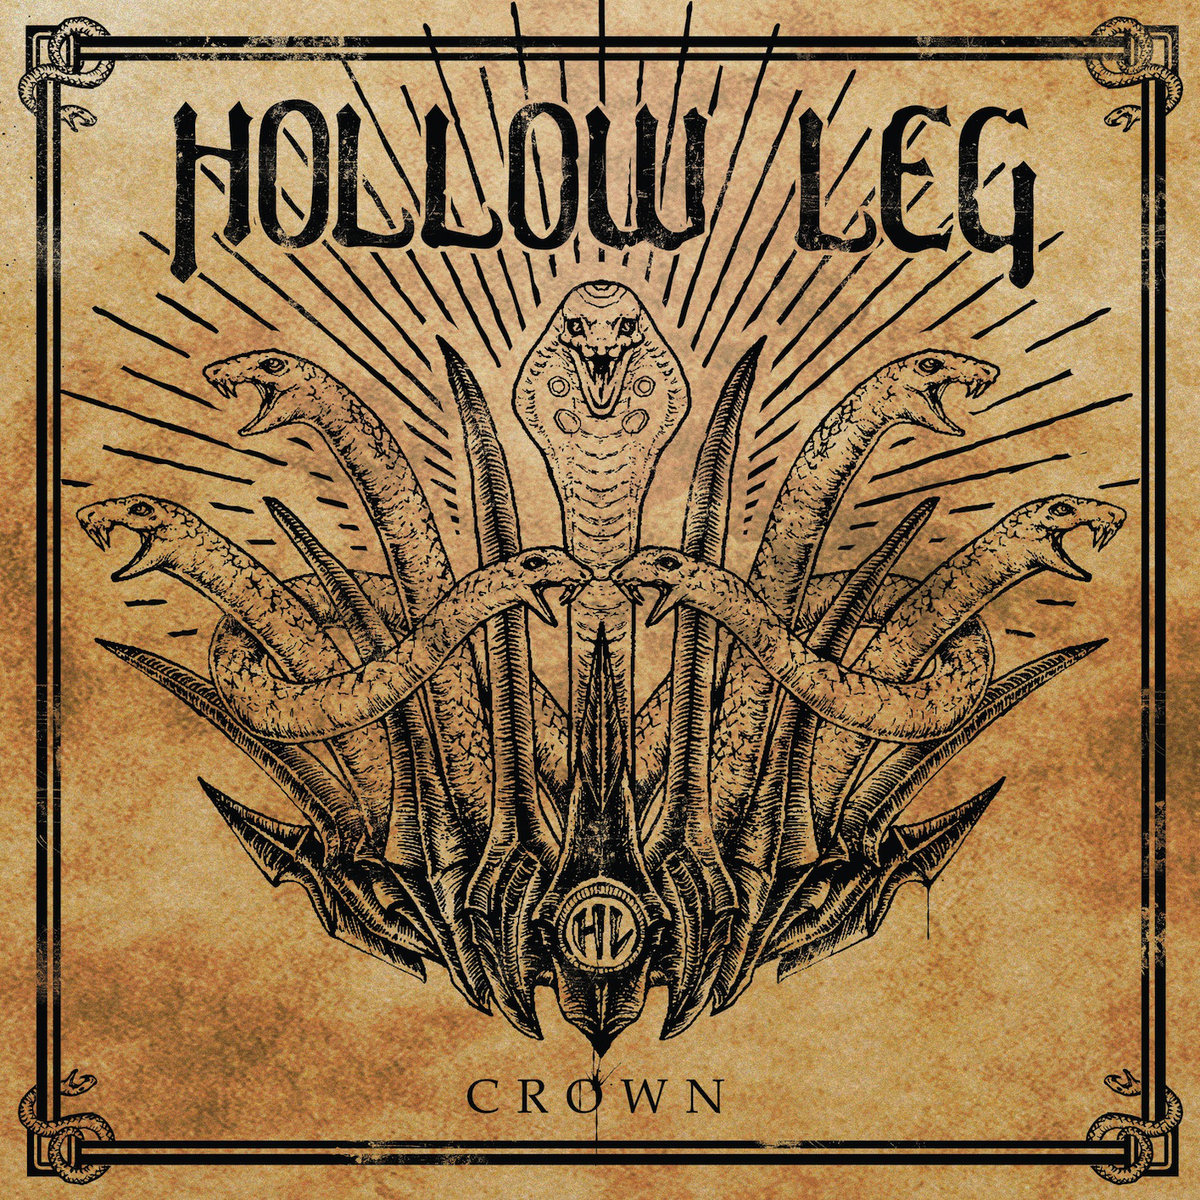 hollow leg crown